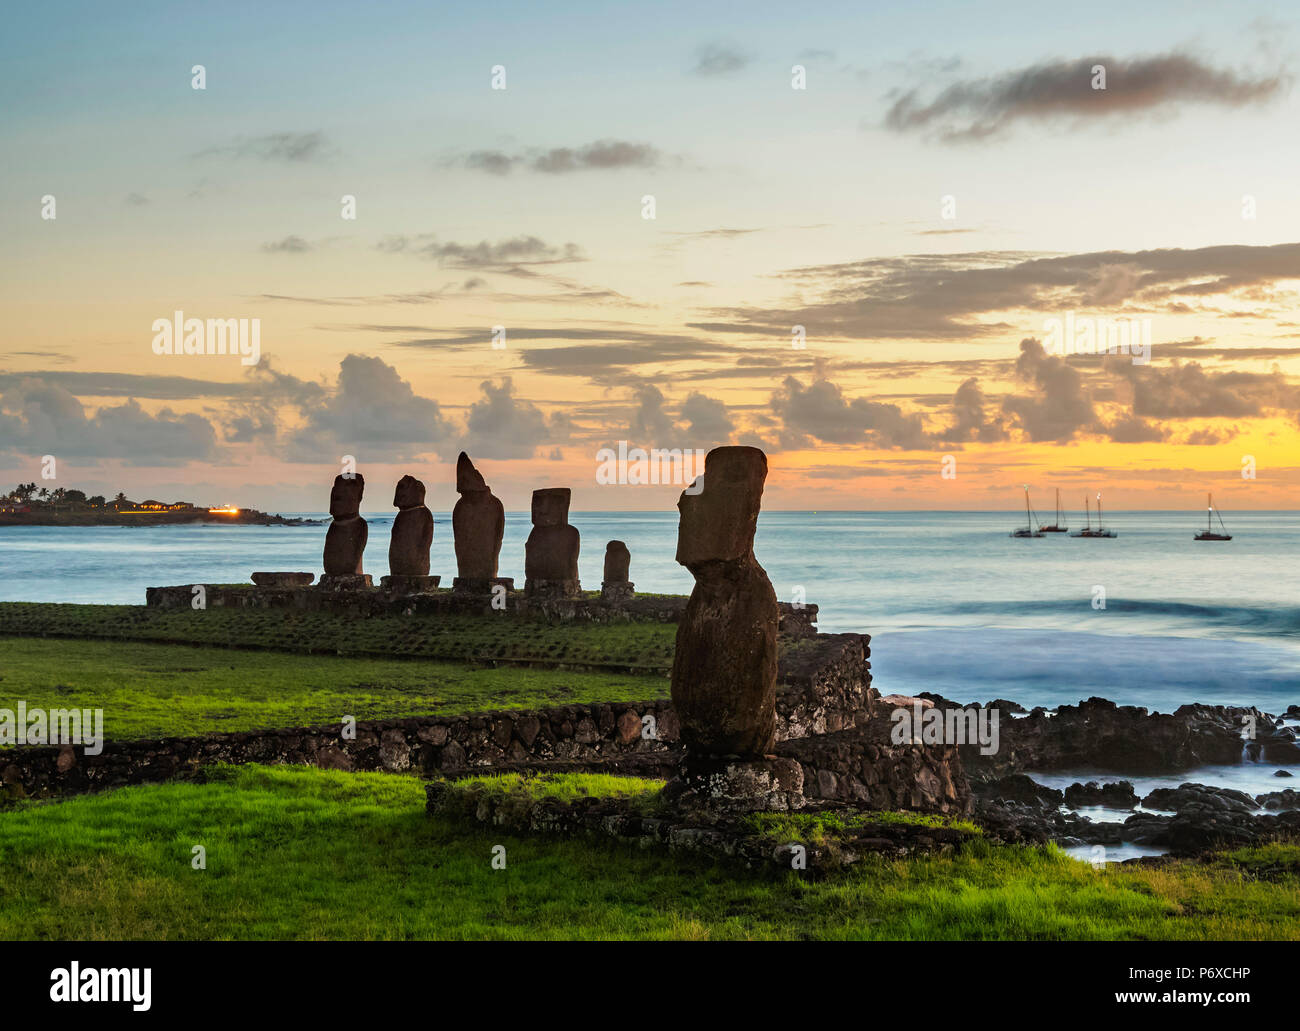 Moais in Tahai Archaeological Complex at sunset, Rapa Nui National Park, Easter Island, Chile - Stock Image